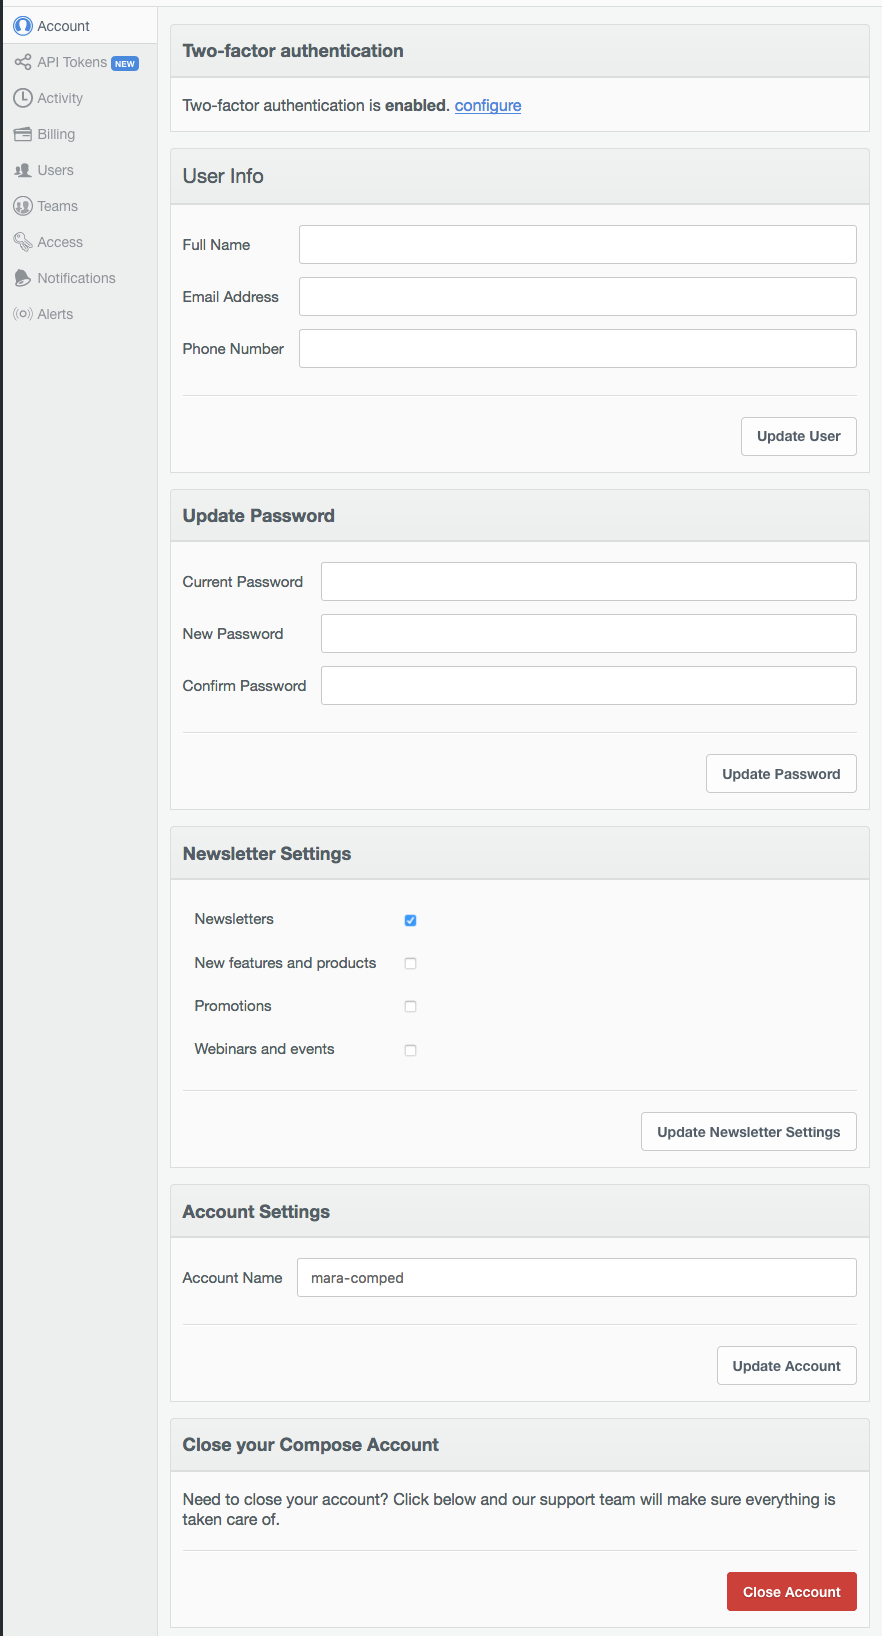 The Accounts panel in the Compose UI.